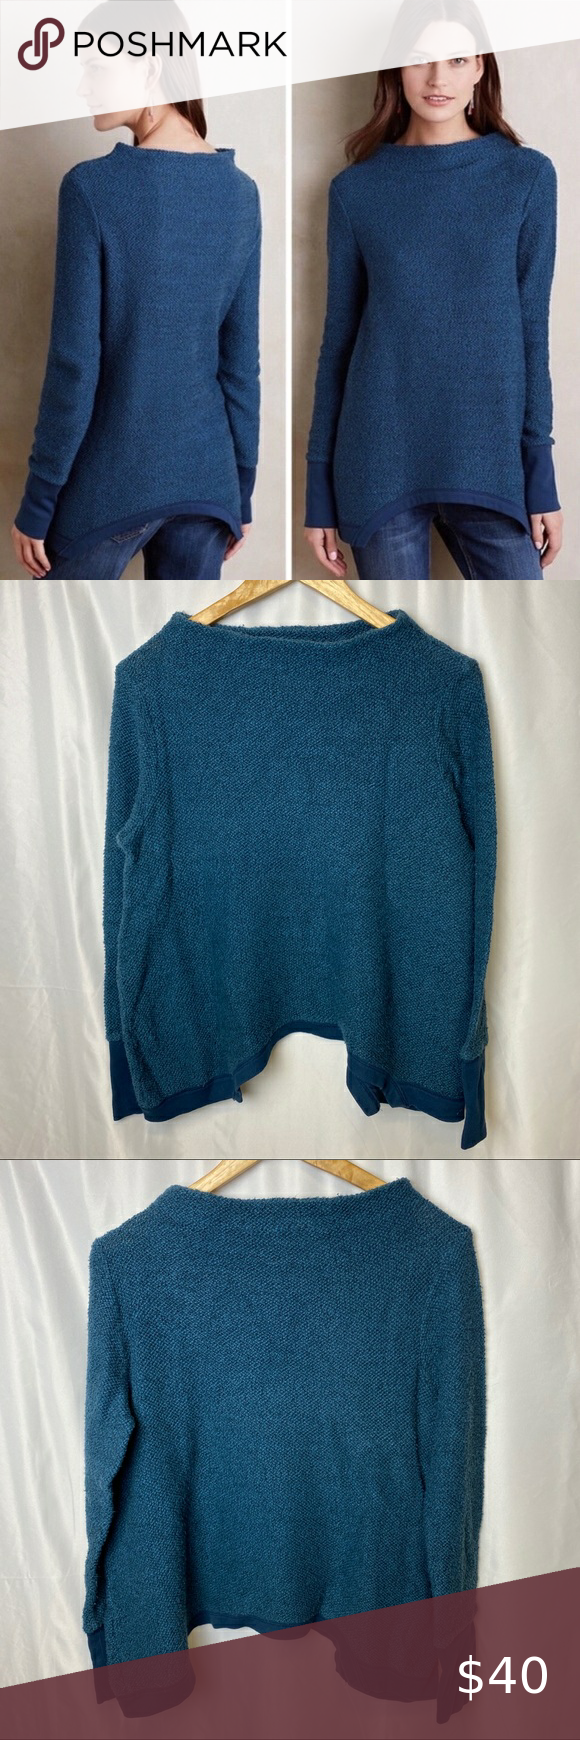 "Anthropologie Postmark Inari Knit Sweater Medium Postmark brand sold at Anthropologie Size Medium High neck blue sweater.  Measurements are approximate Sleeve 24"" Pit to pit 20.5"" Front length from shoulder 23.5""  #0131 Anthropologie Sweaters Cowl & Turtlenecks"